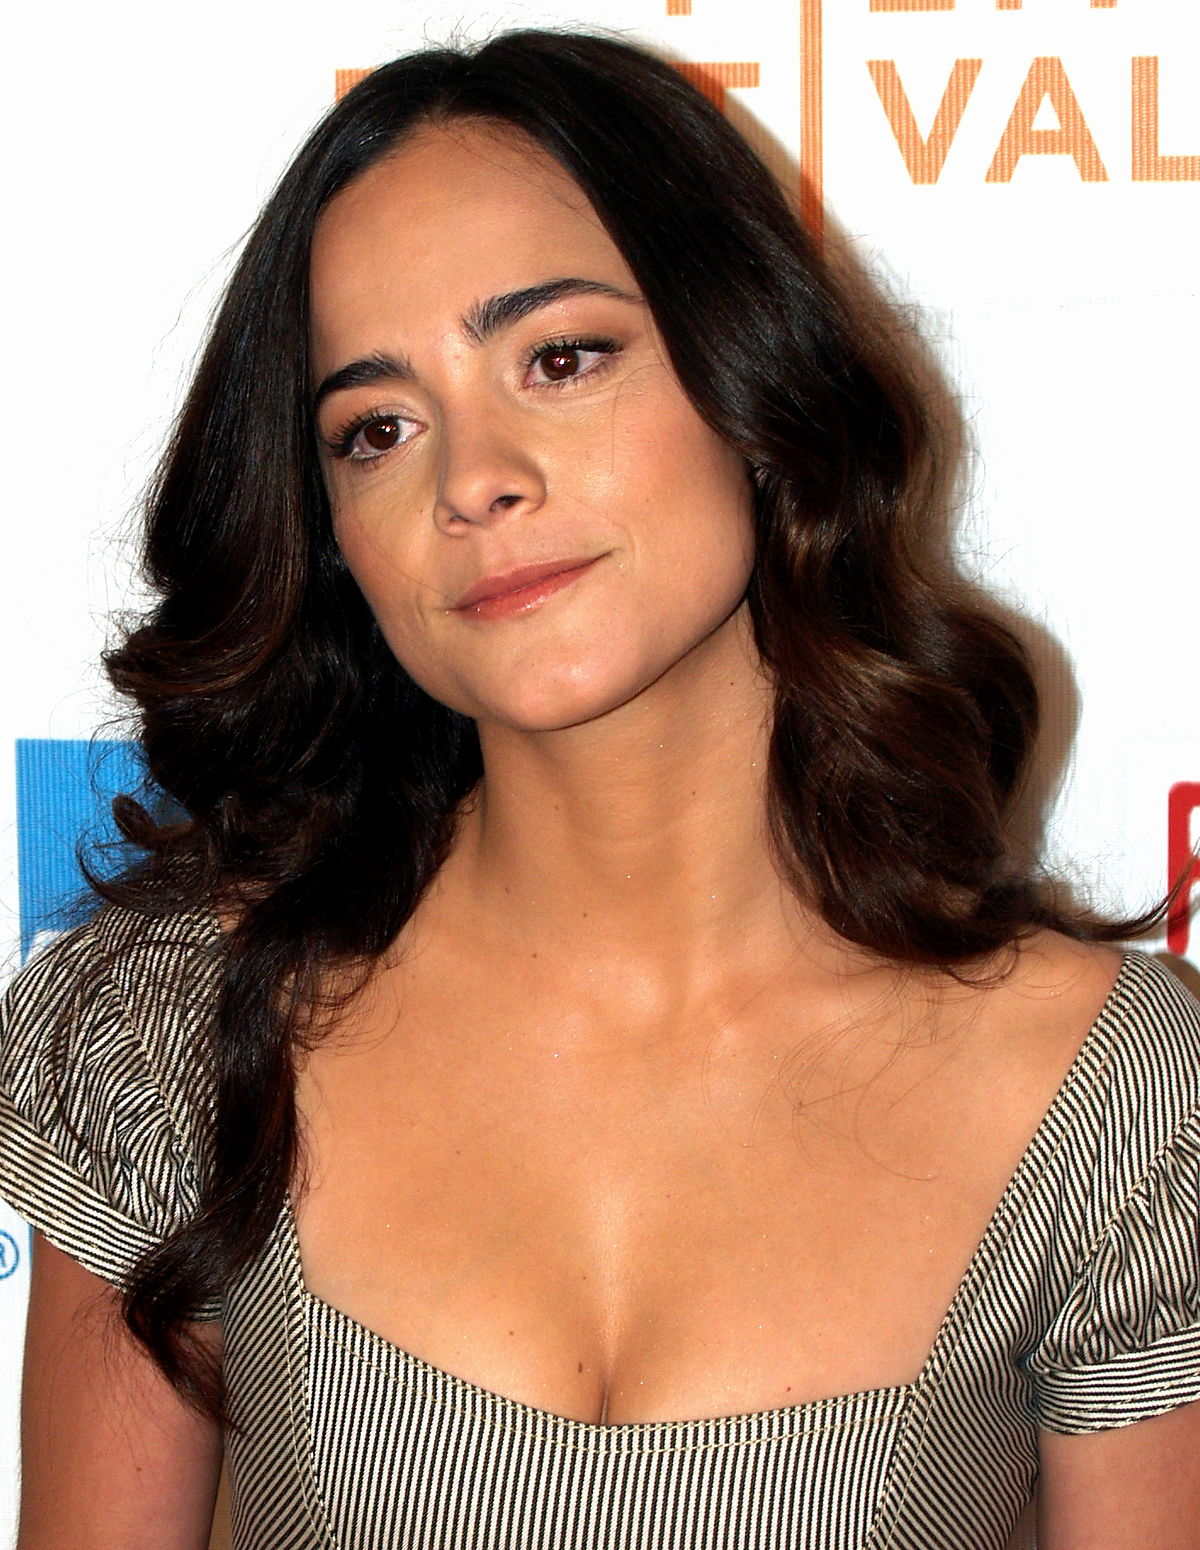 ICloud Alice Braga nudes (88 photos), Pussy, Fappening, Twitter, legs 2015